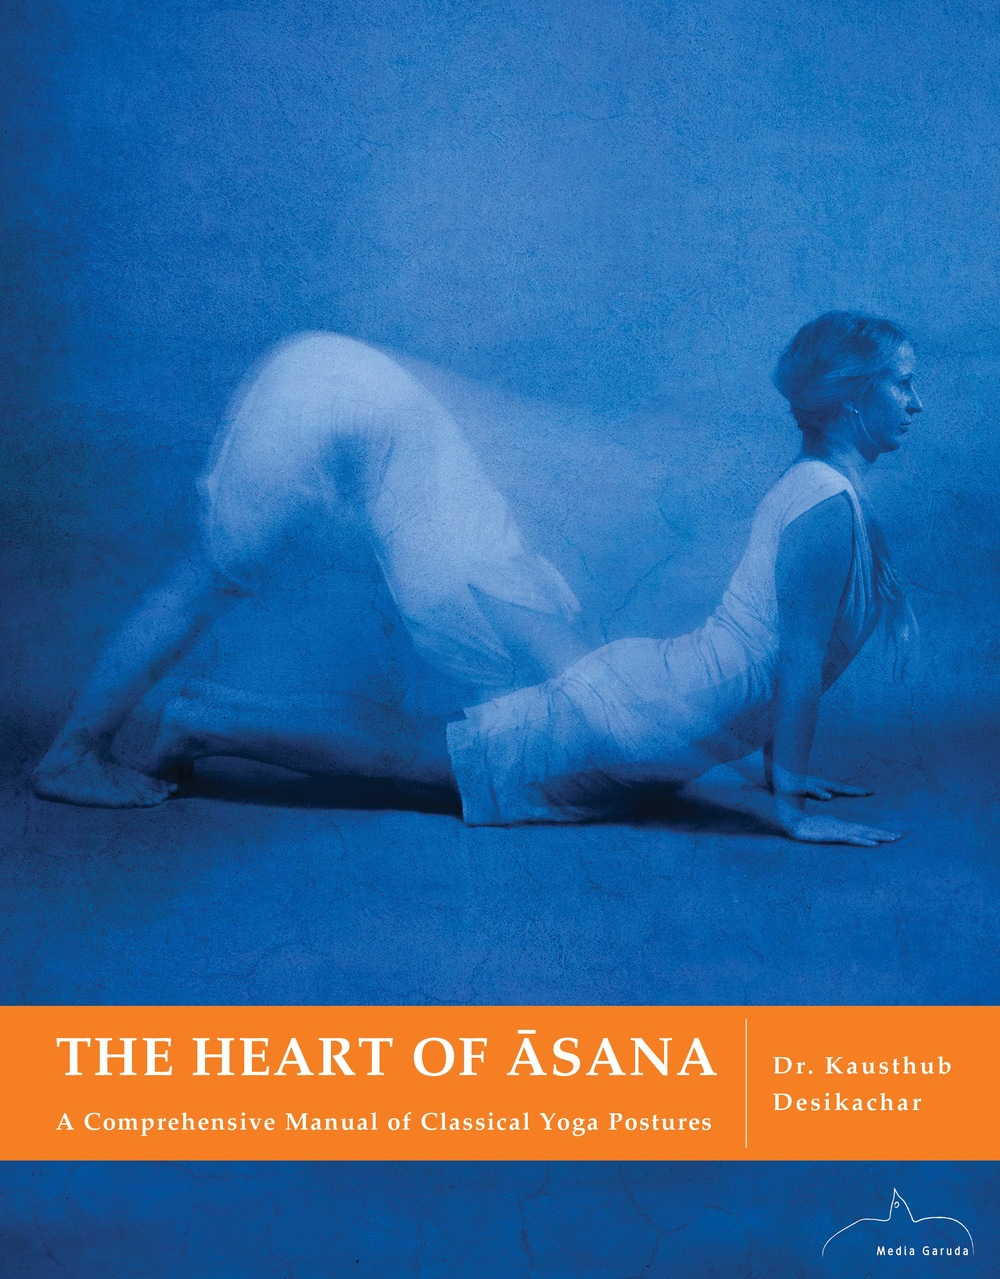 The Heart of Asana